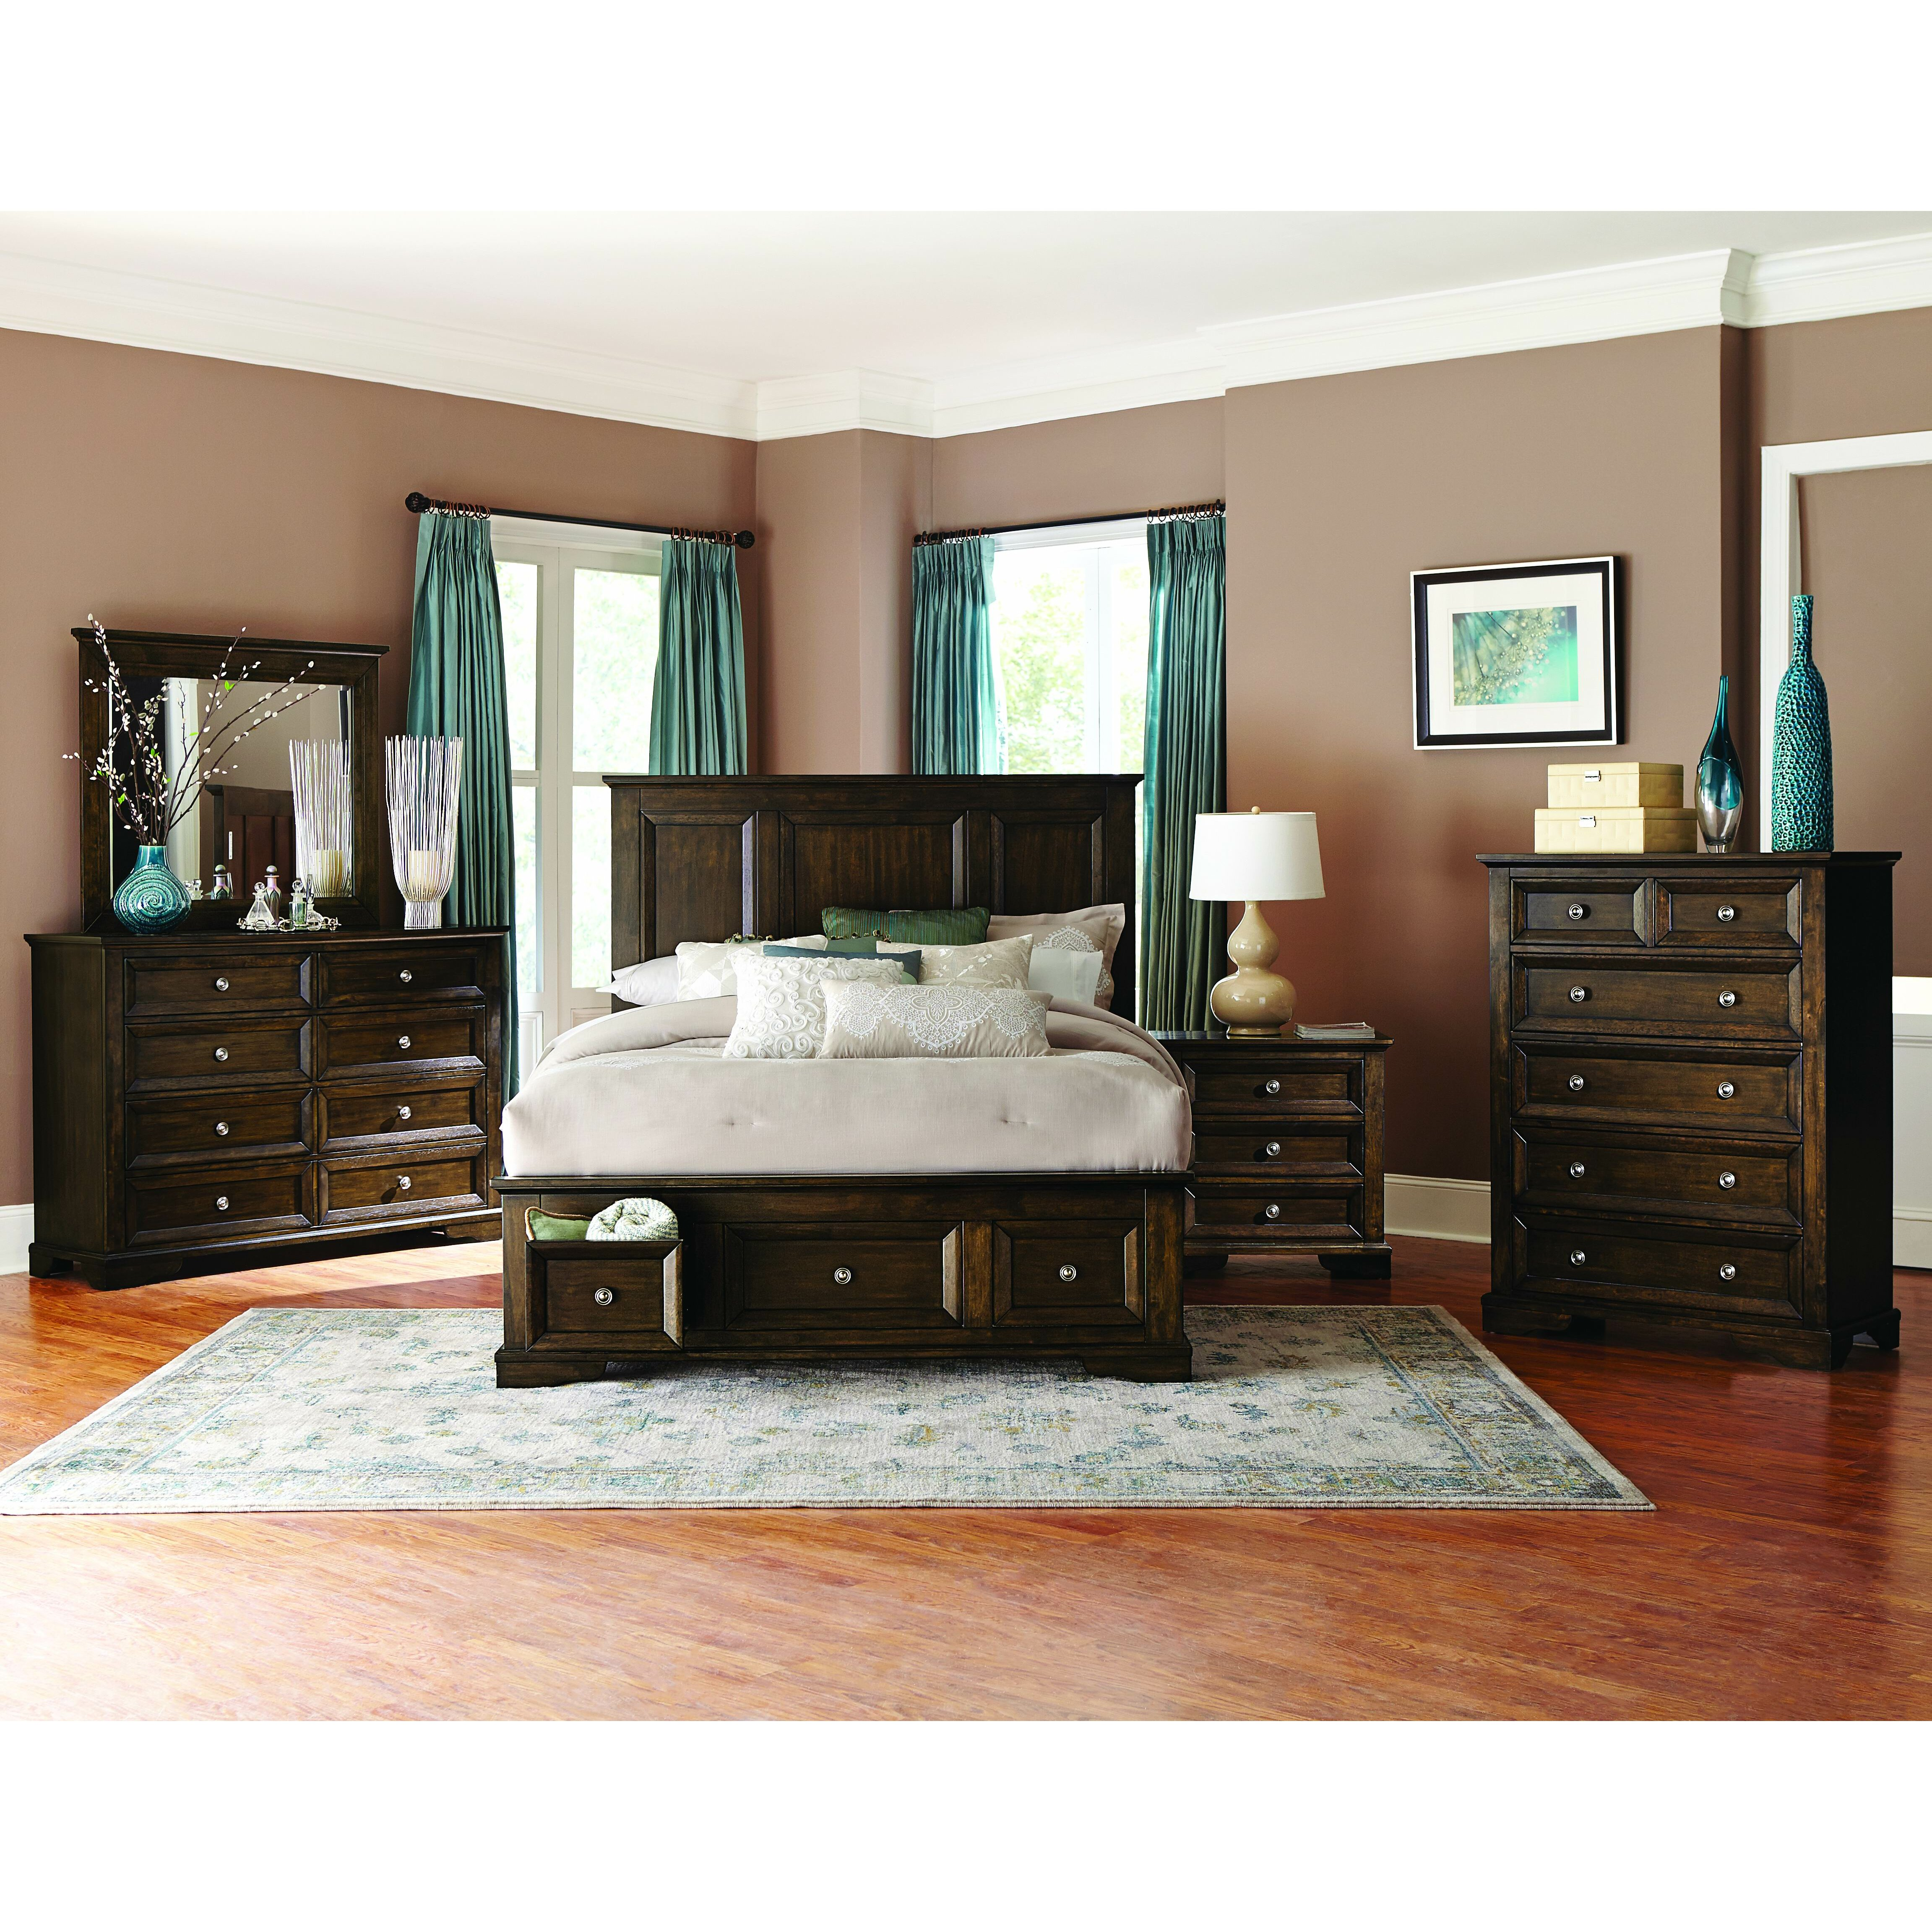 Homelegance Eunice Platform Customizable Bedroom Set. Homelegance Eunice Platform Customizable Bedroom Set   Reviews